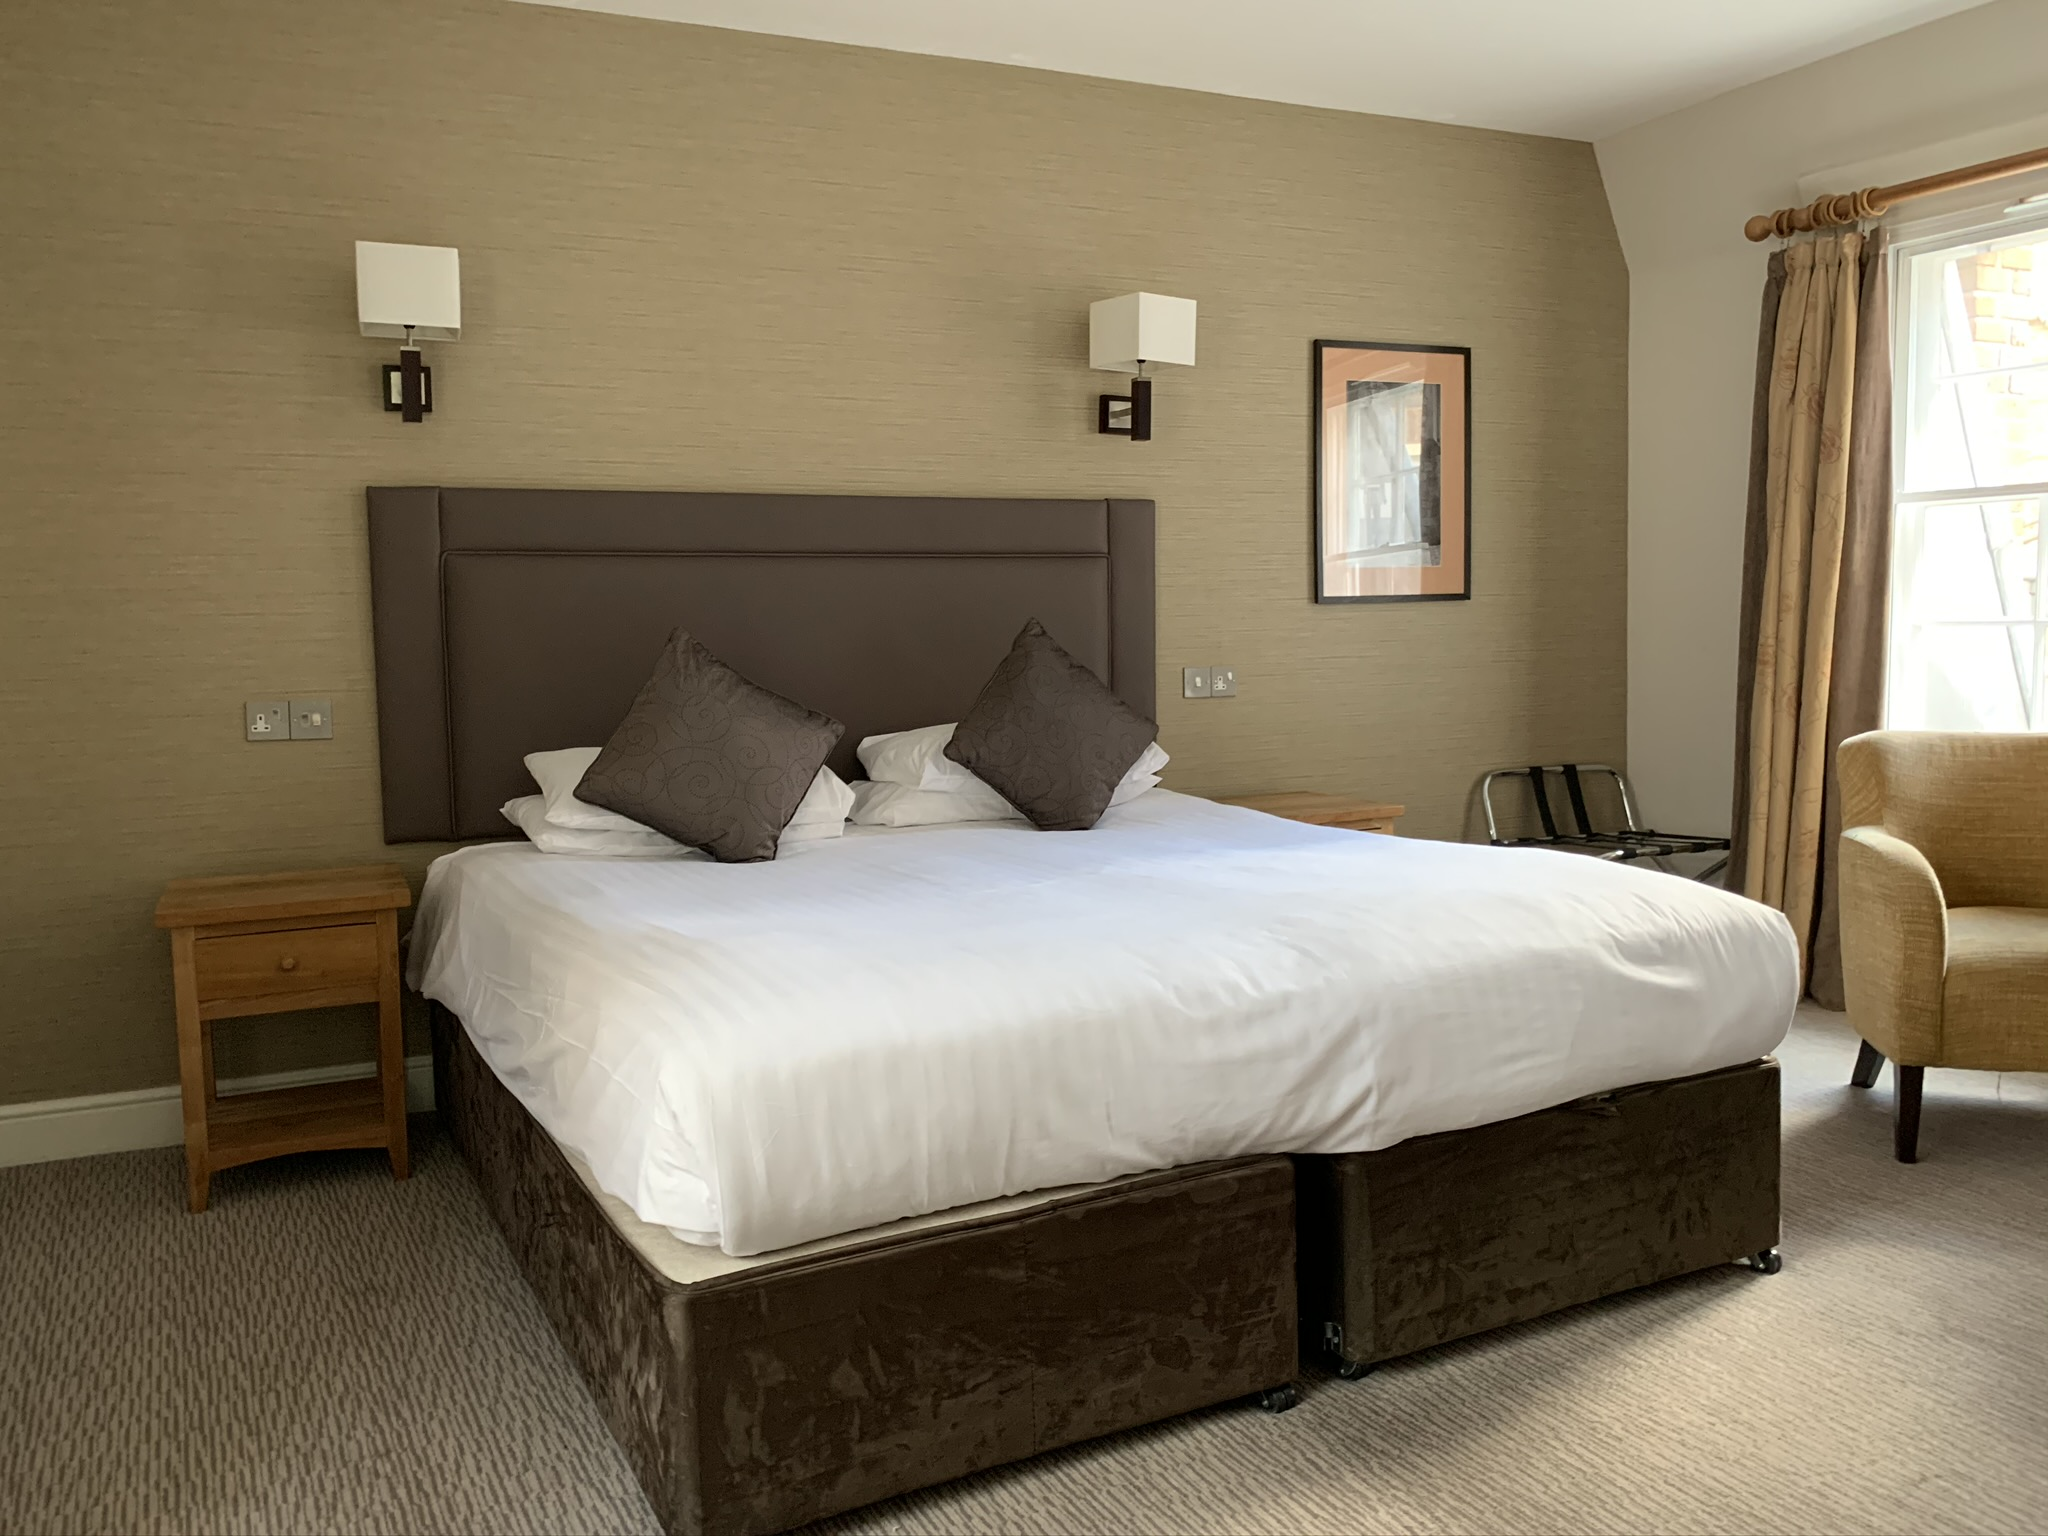 Budget Hotel Windsor, Goswell House